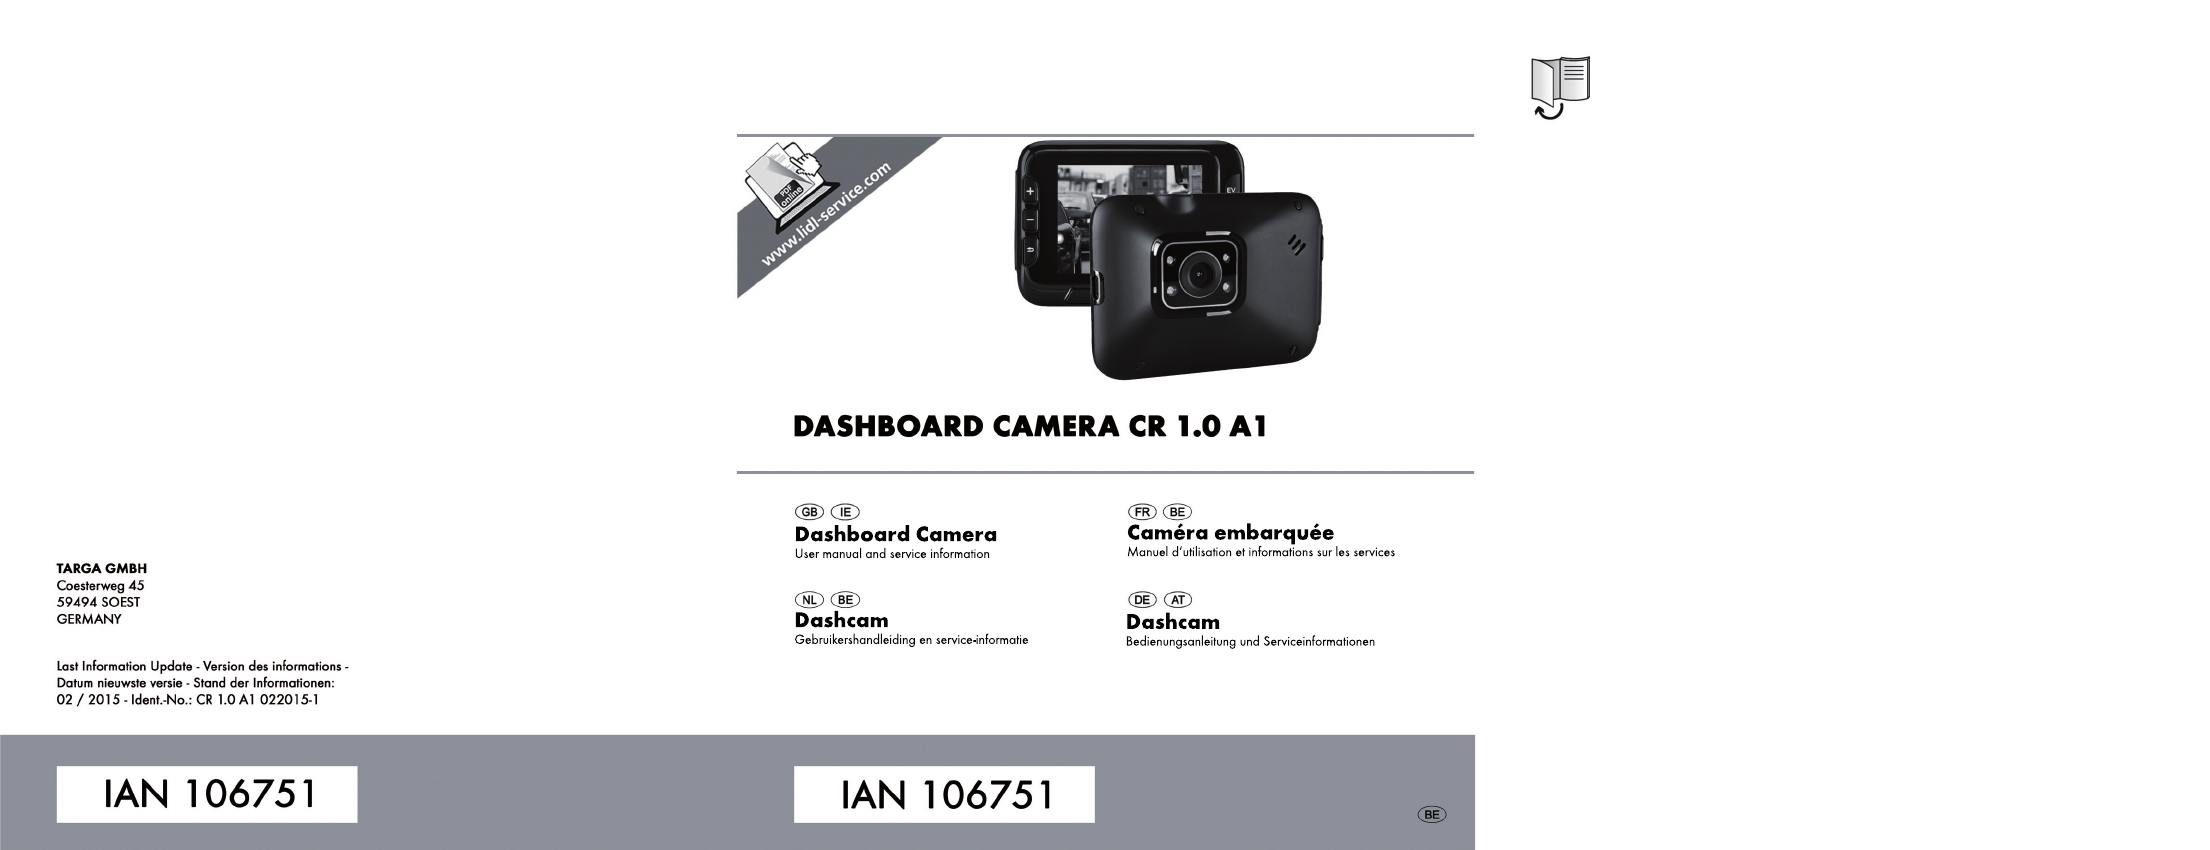 Handleiding targa cr 1 0a1 ian 106751 dashcam pagina 1 for Camera targa